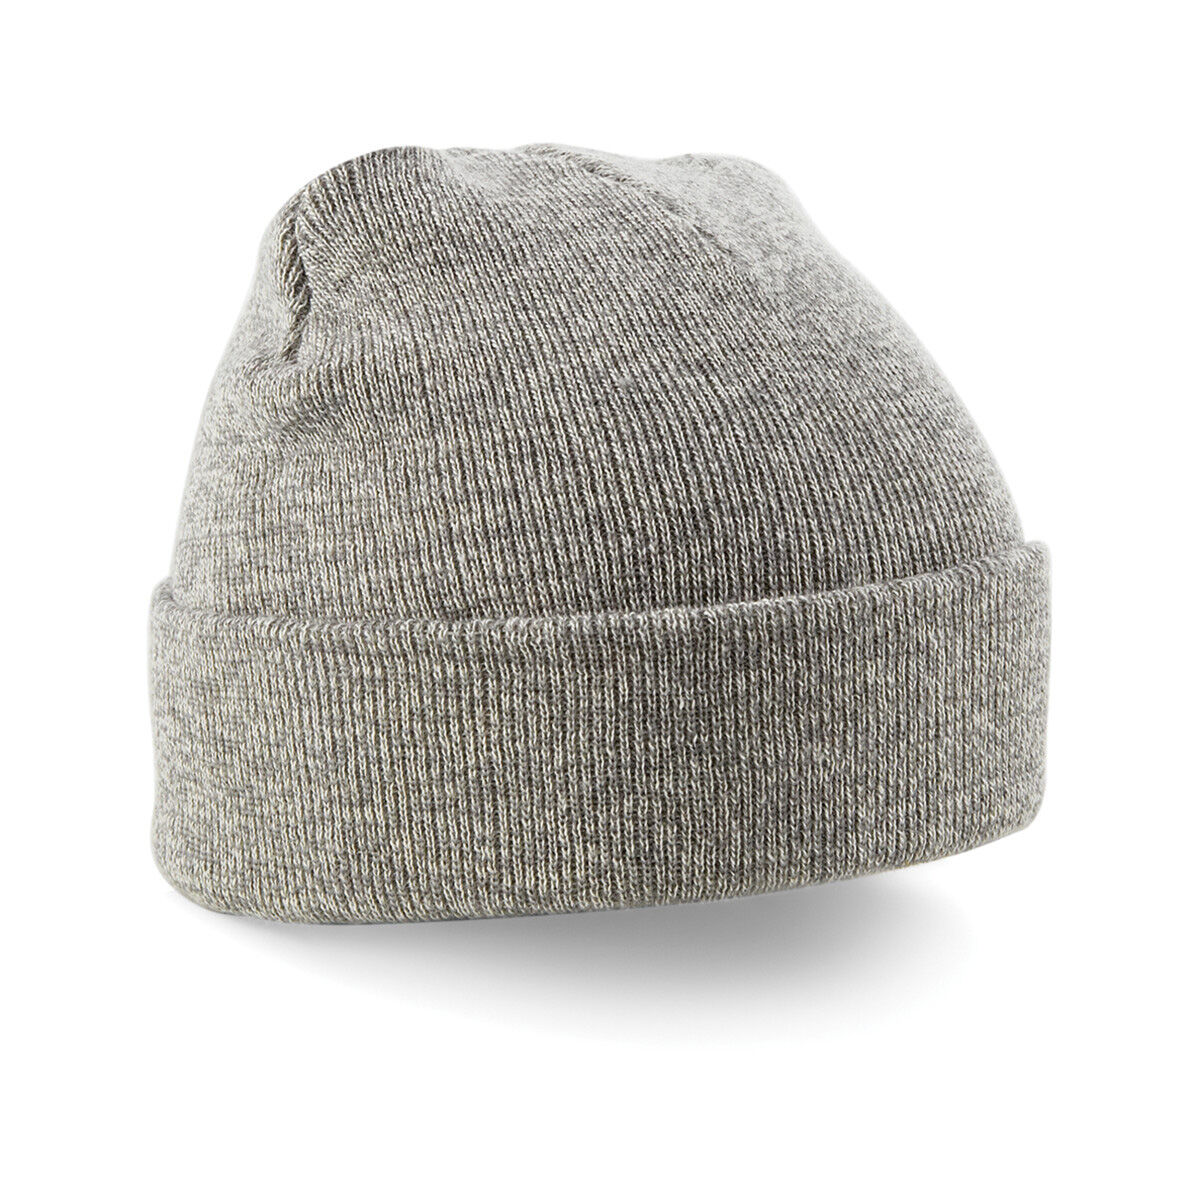 Beanie Hats with Turn Up Cuff